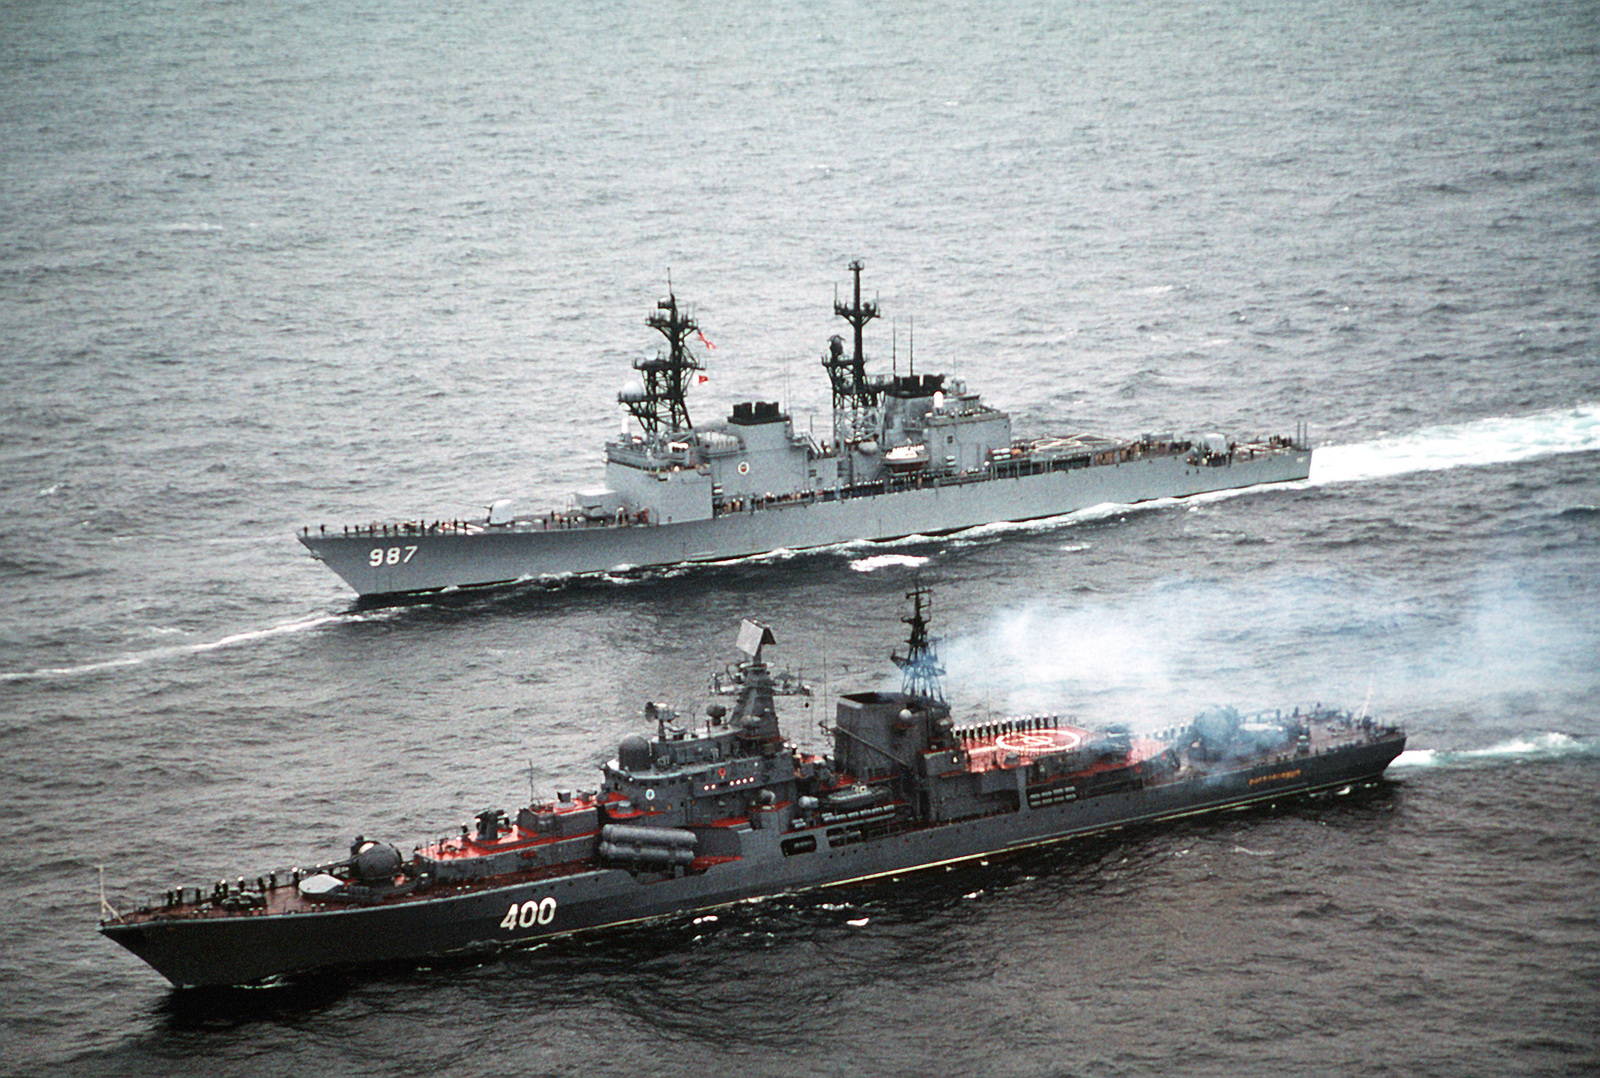 With the crews of both ships manning the rails in the naval tradition of rendering passing honors, the destroyer USS O'BANNON (DD-987) steams alongside the Russian Sovremenny-class destroyer RASTOROPHNNY (EM-400) while heading for the Russian city of Severomorsk